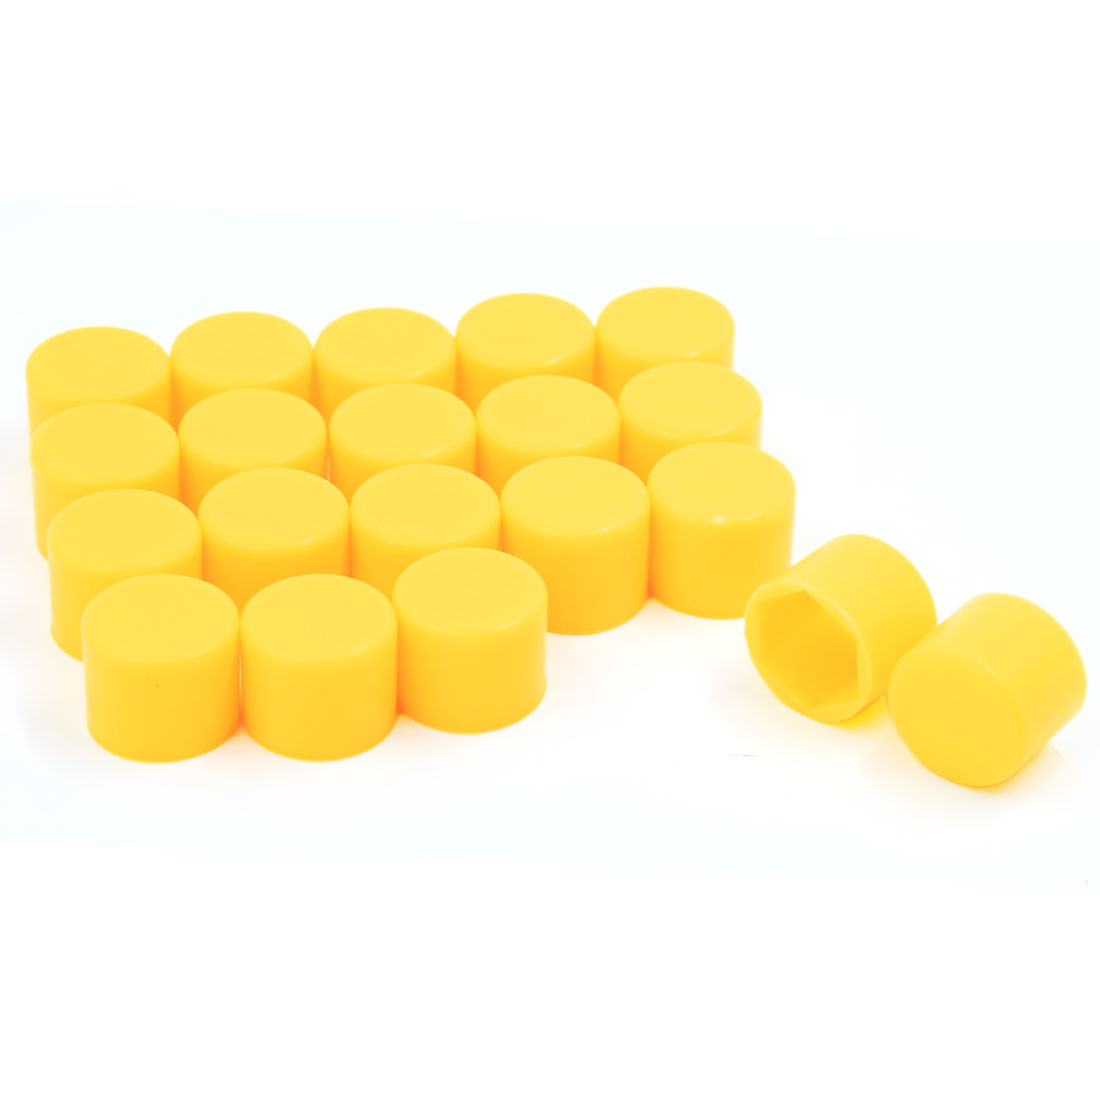 20 Pcs Yellow Silicone Wheel Lug Bolt Nut Cover Hexagonal Cap 17mm for Car Auto